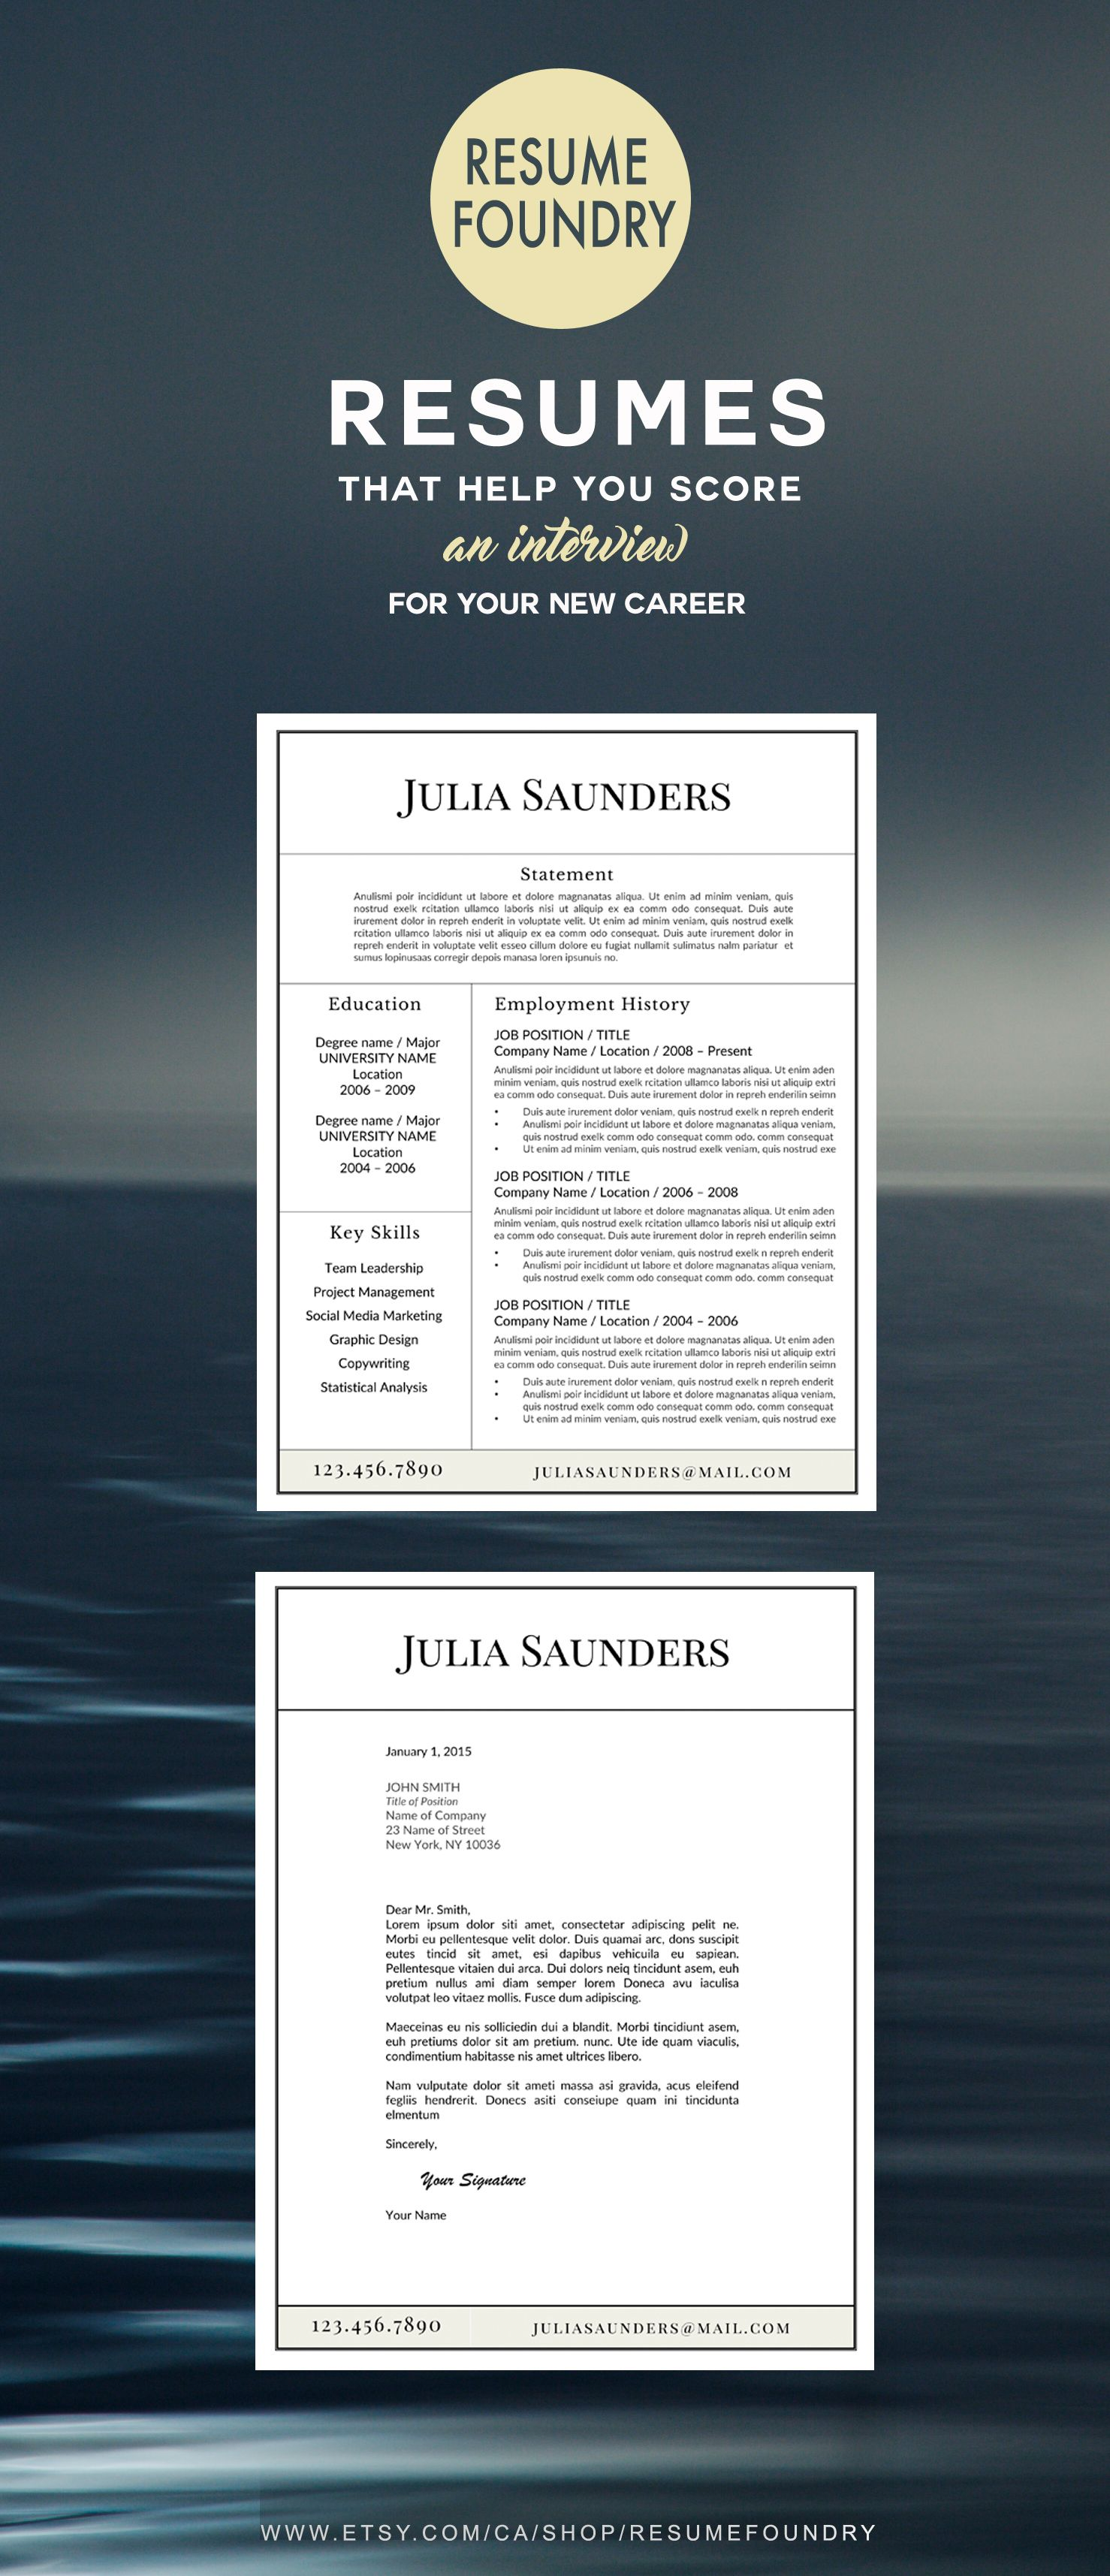 Simple Yet Stylish Resume Template Ready For Your Career Details